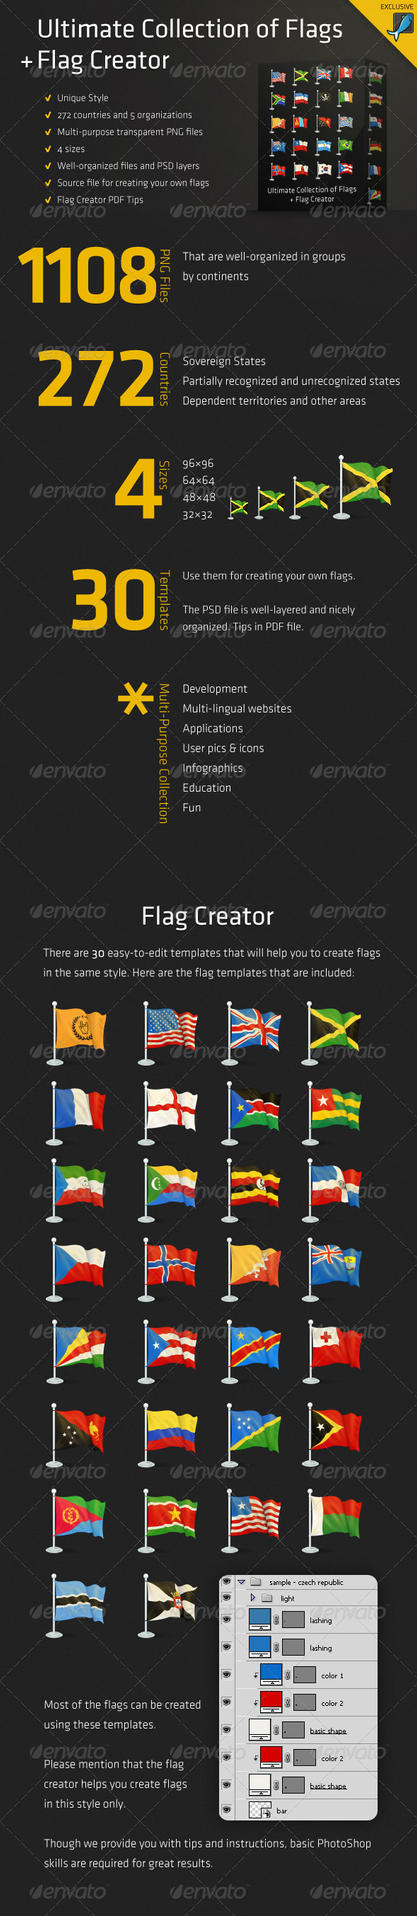 Ultimate Collection of Flags by Rukamiby